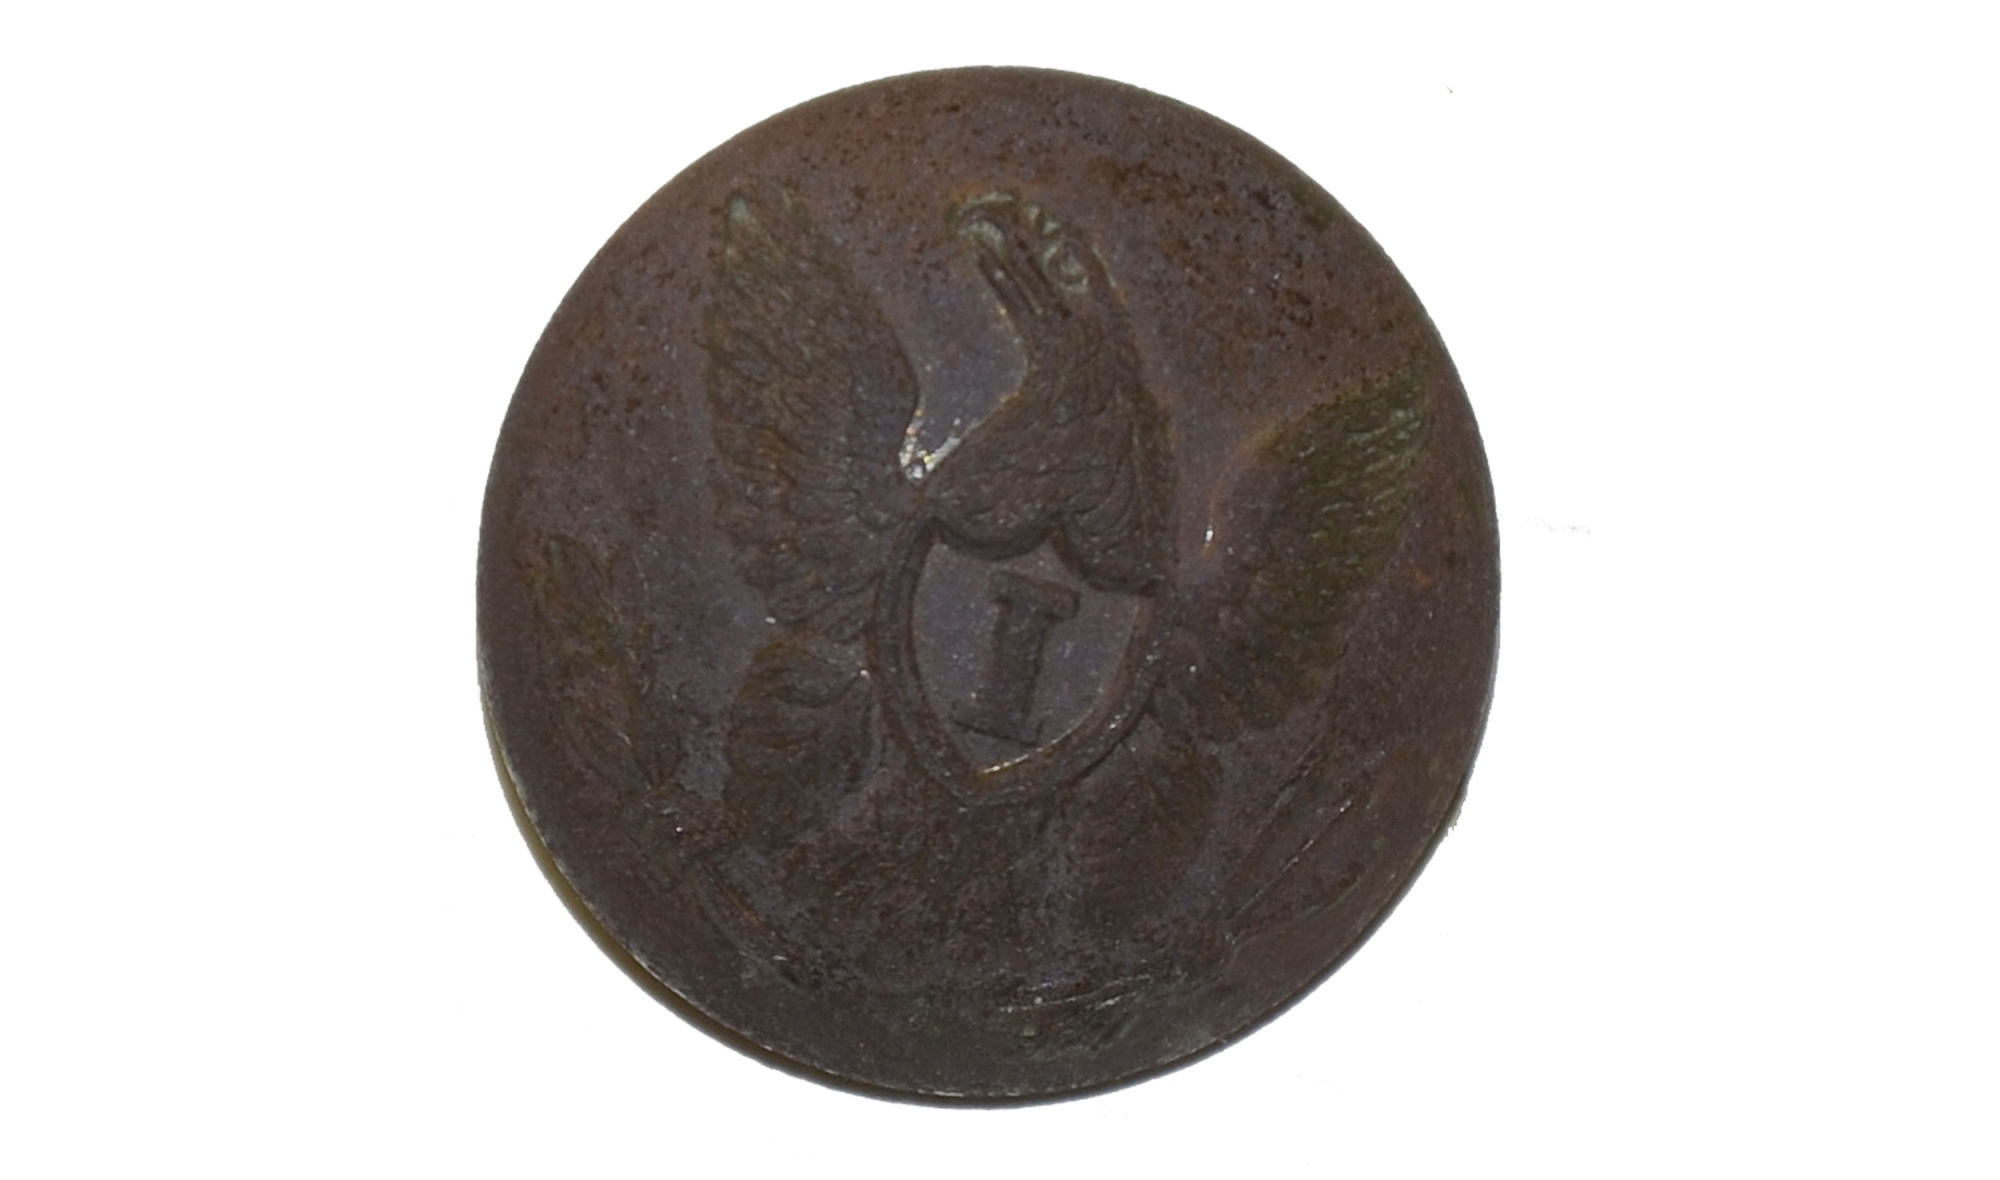 "UNION GENERAL SERVICE EAGLE ""I"" COAT BUTTON FROM THE MAC MASON COLLECTION"